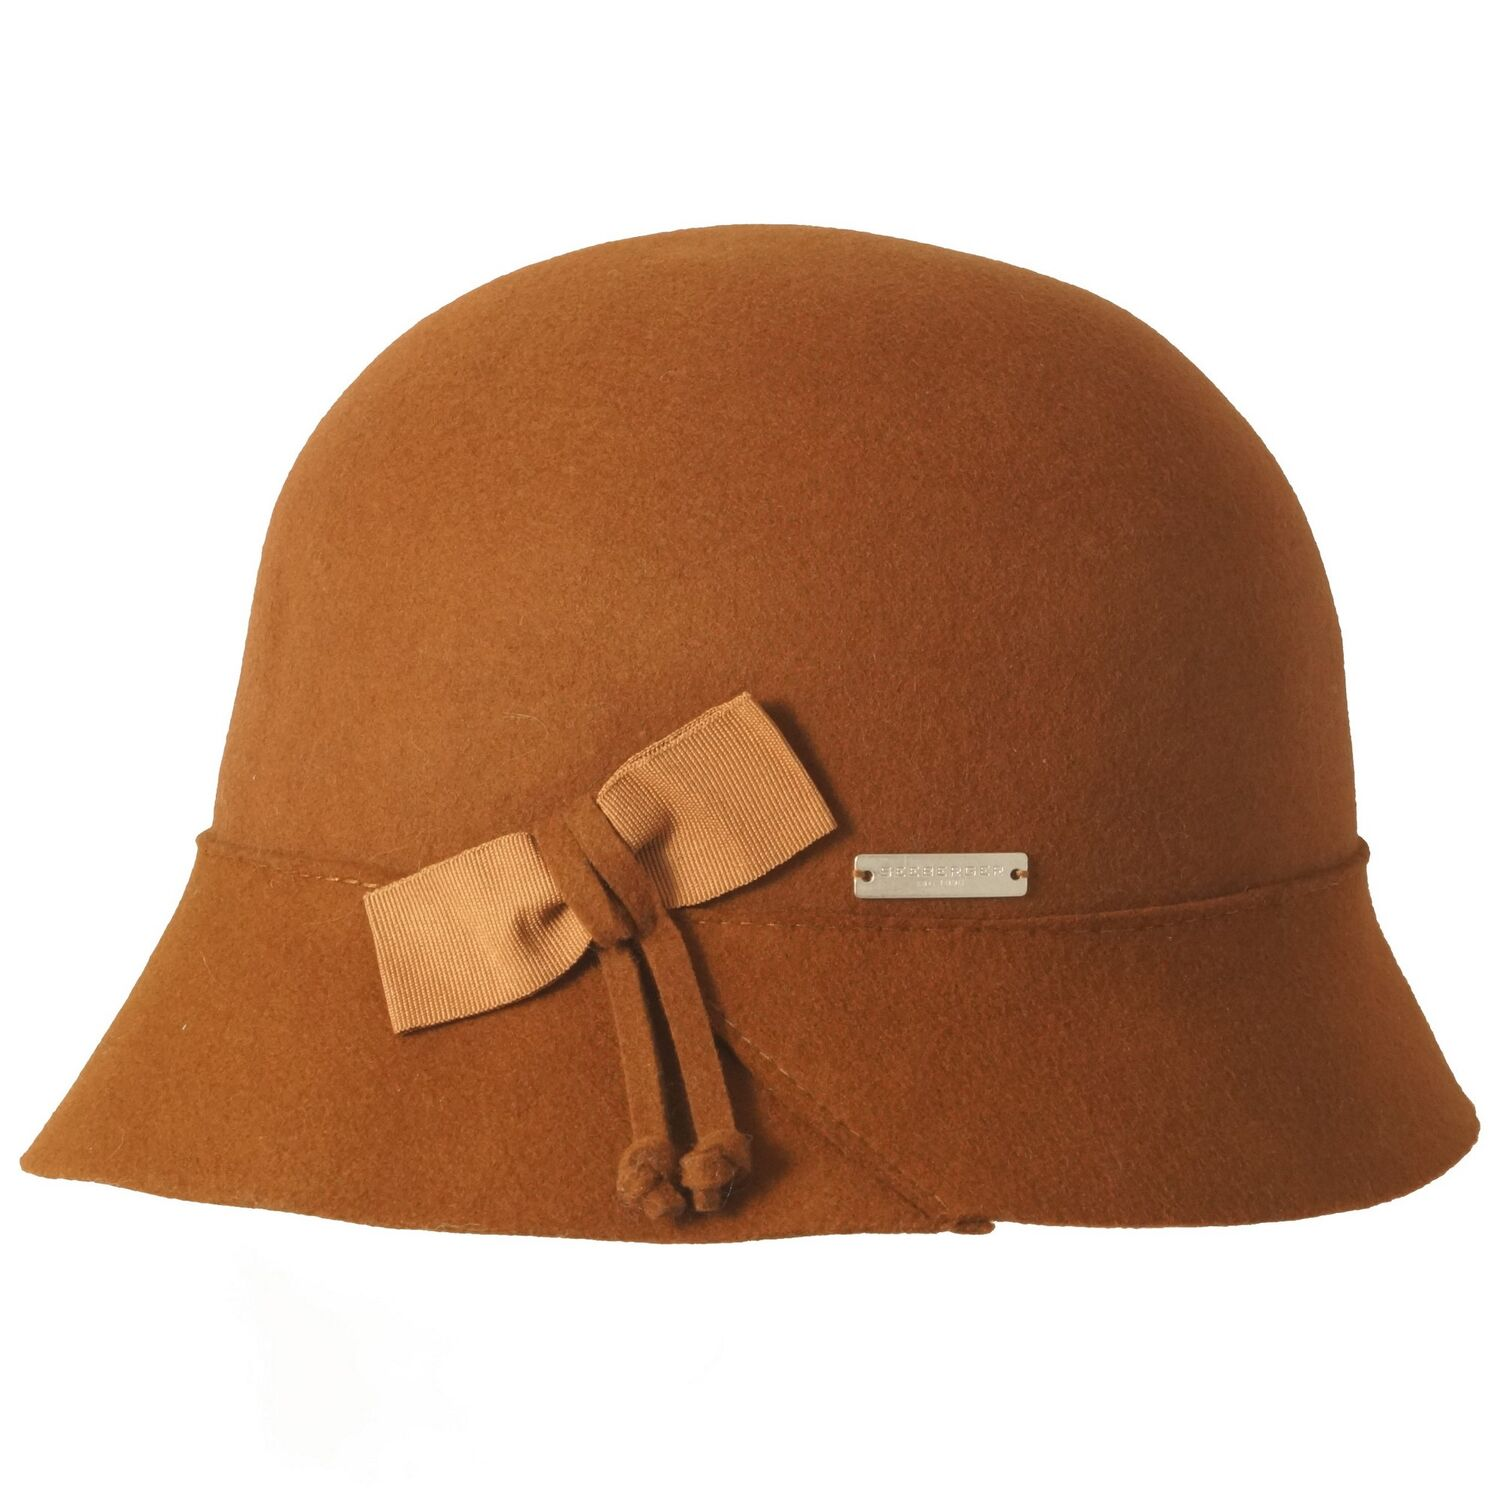 Seeberger Bowed Wool Damen Hut Filzhut 100/% Wollfilz Damenhut Cloche Glockenhut